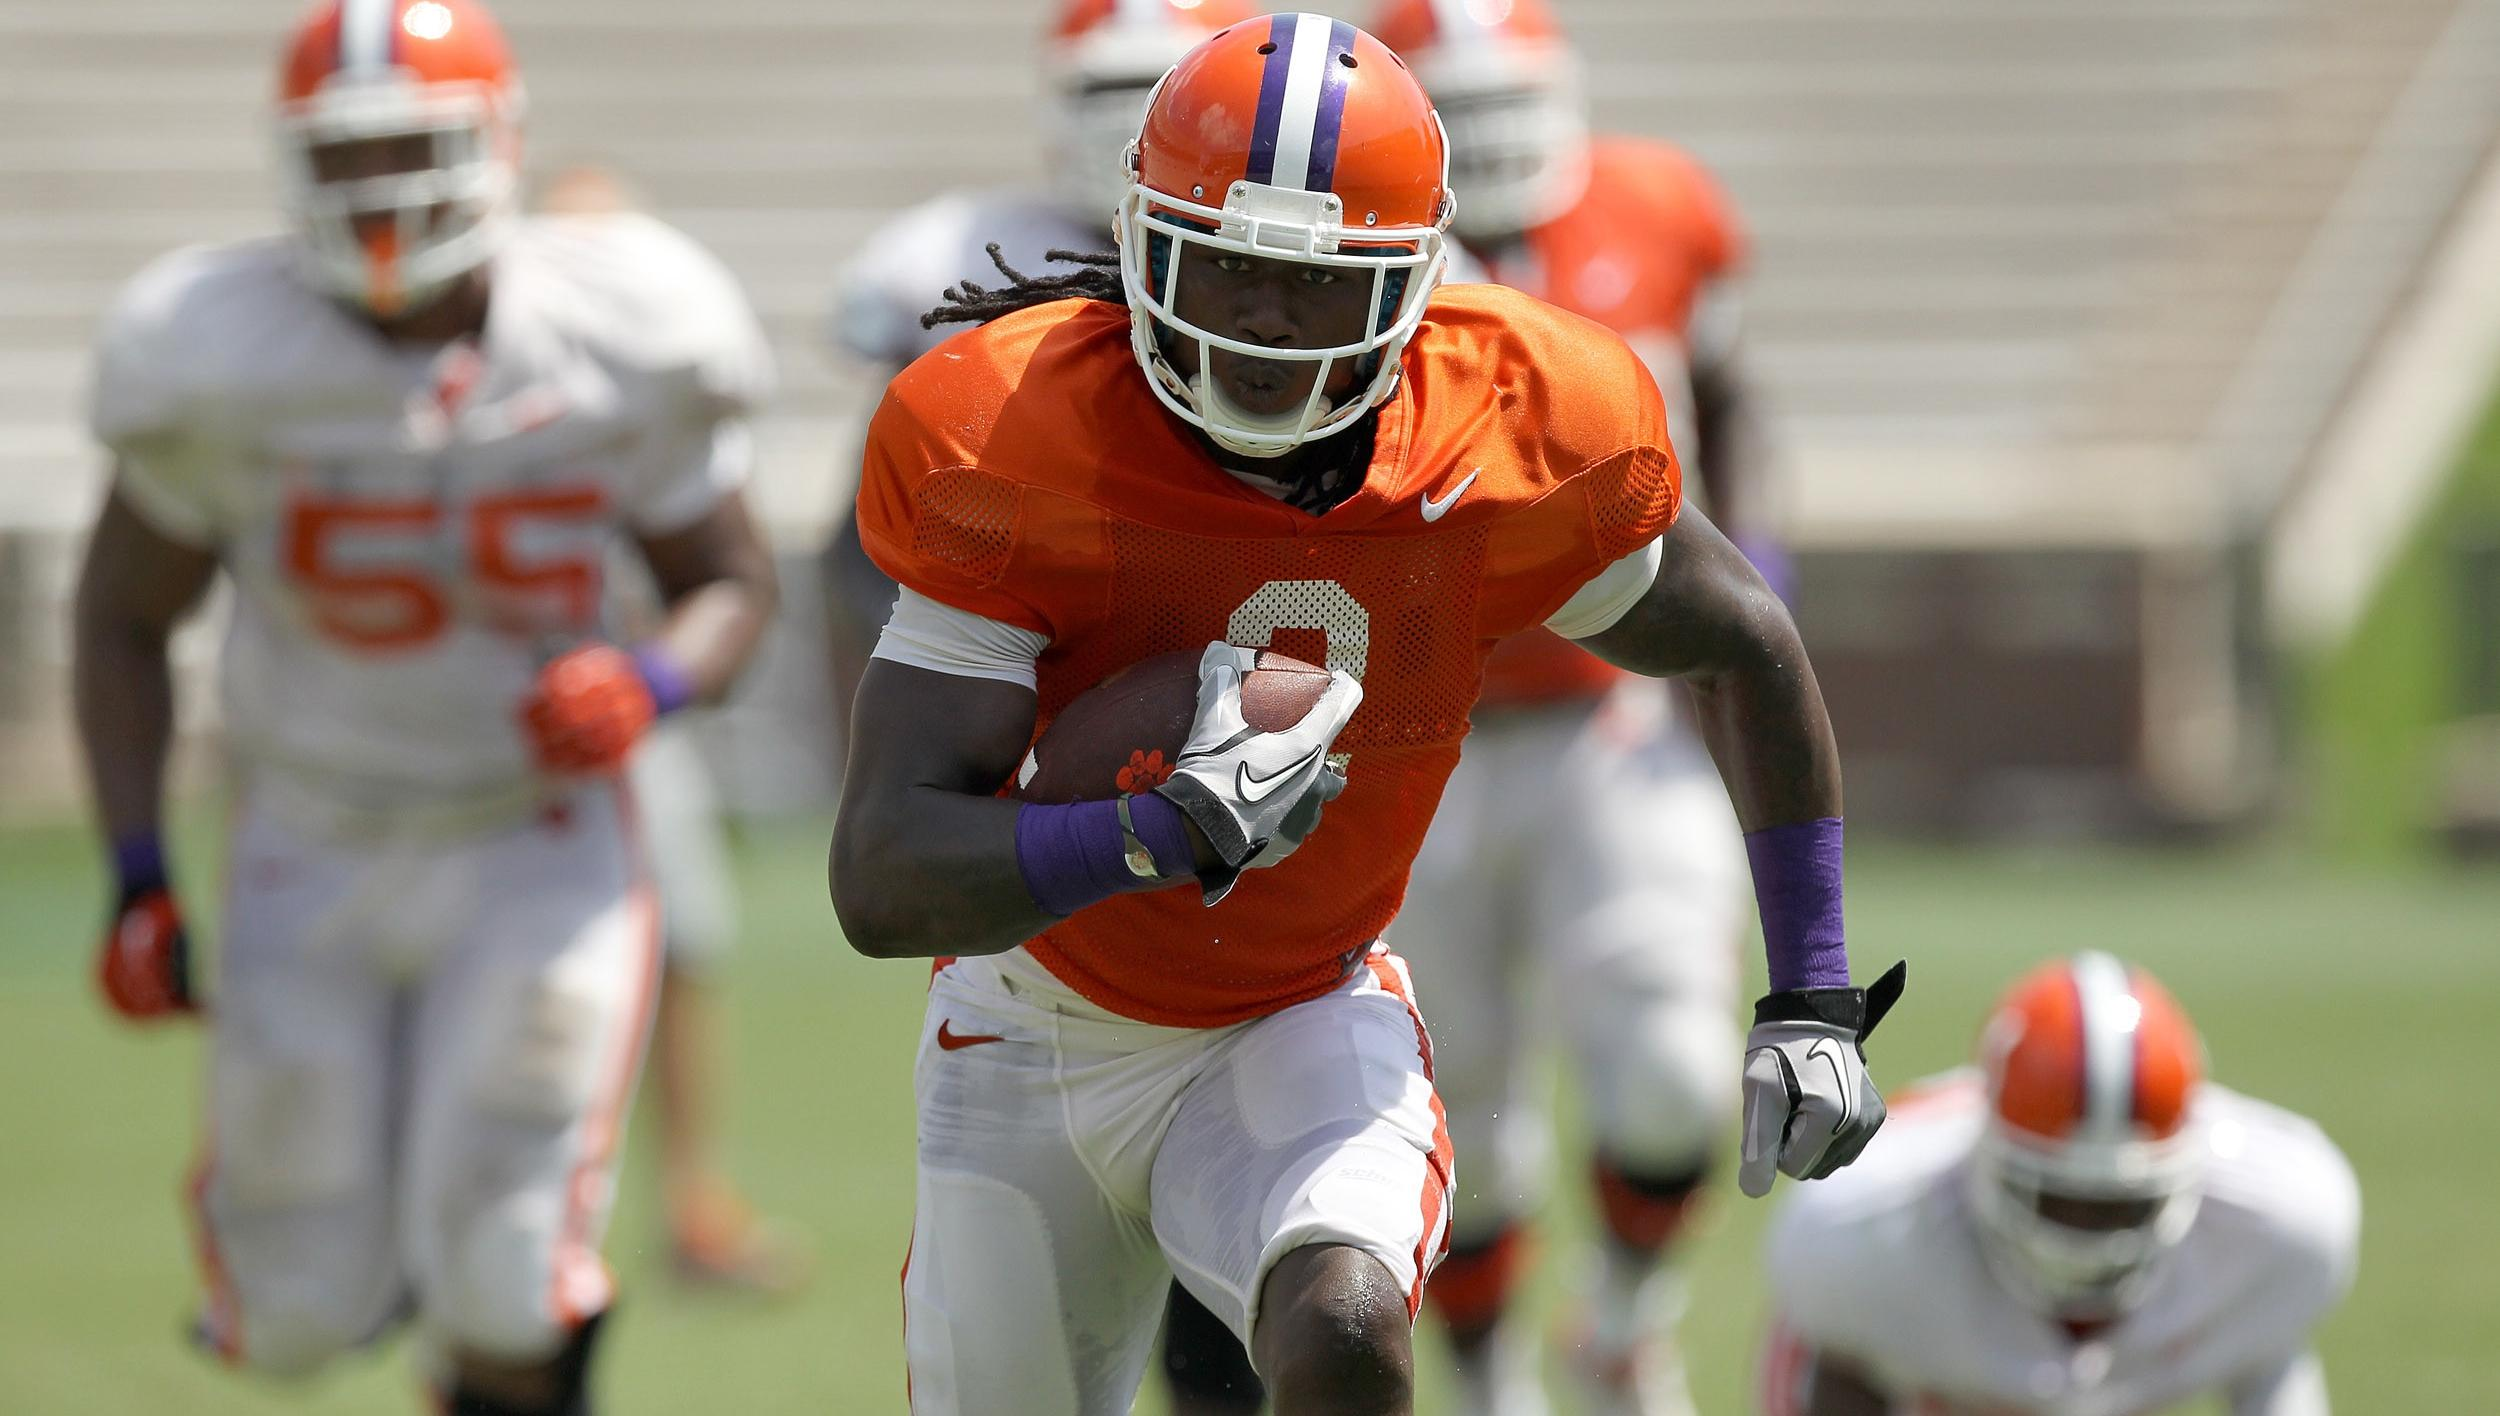 EXCLUSIVE: Swinney Encouraged by Team's Depth in First Stadium Scrimmage